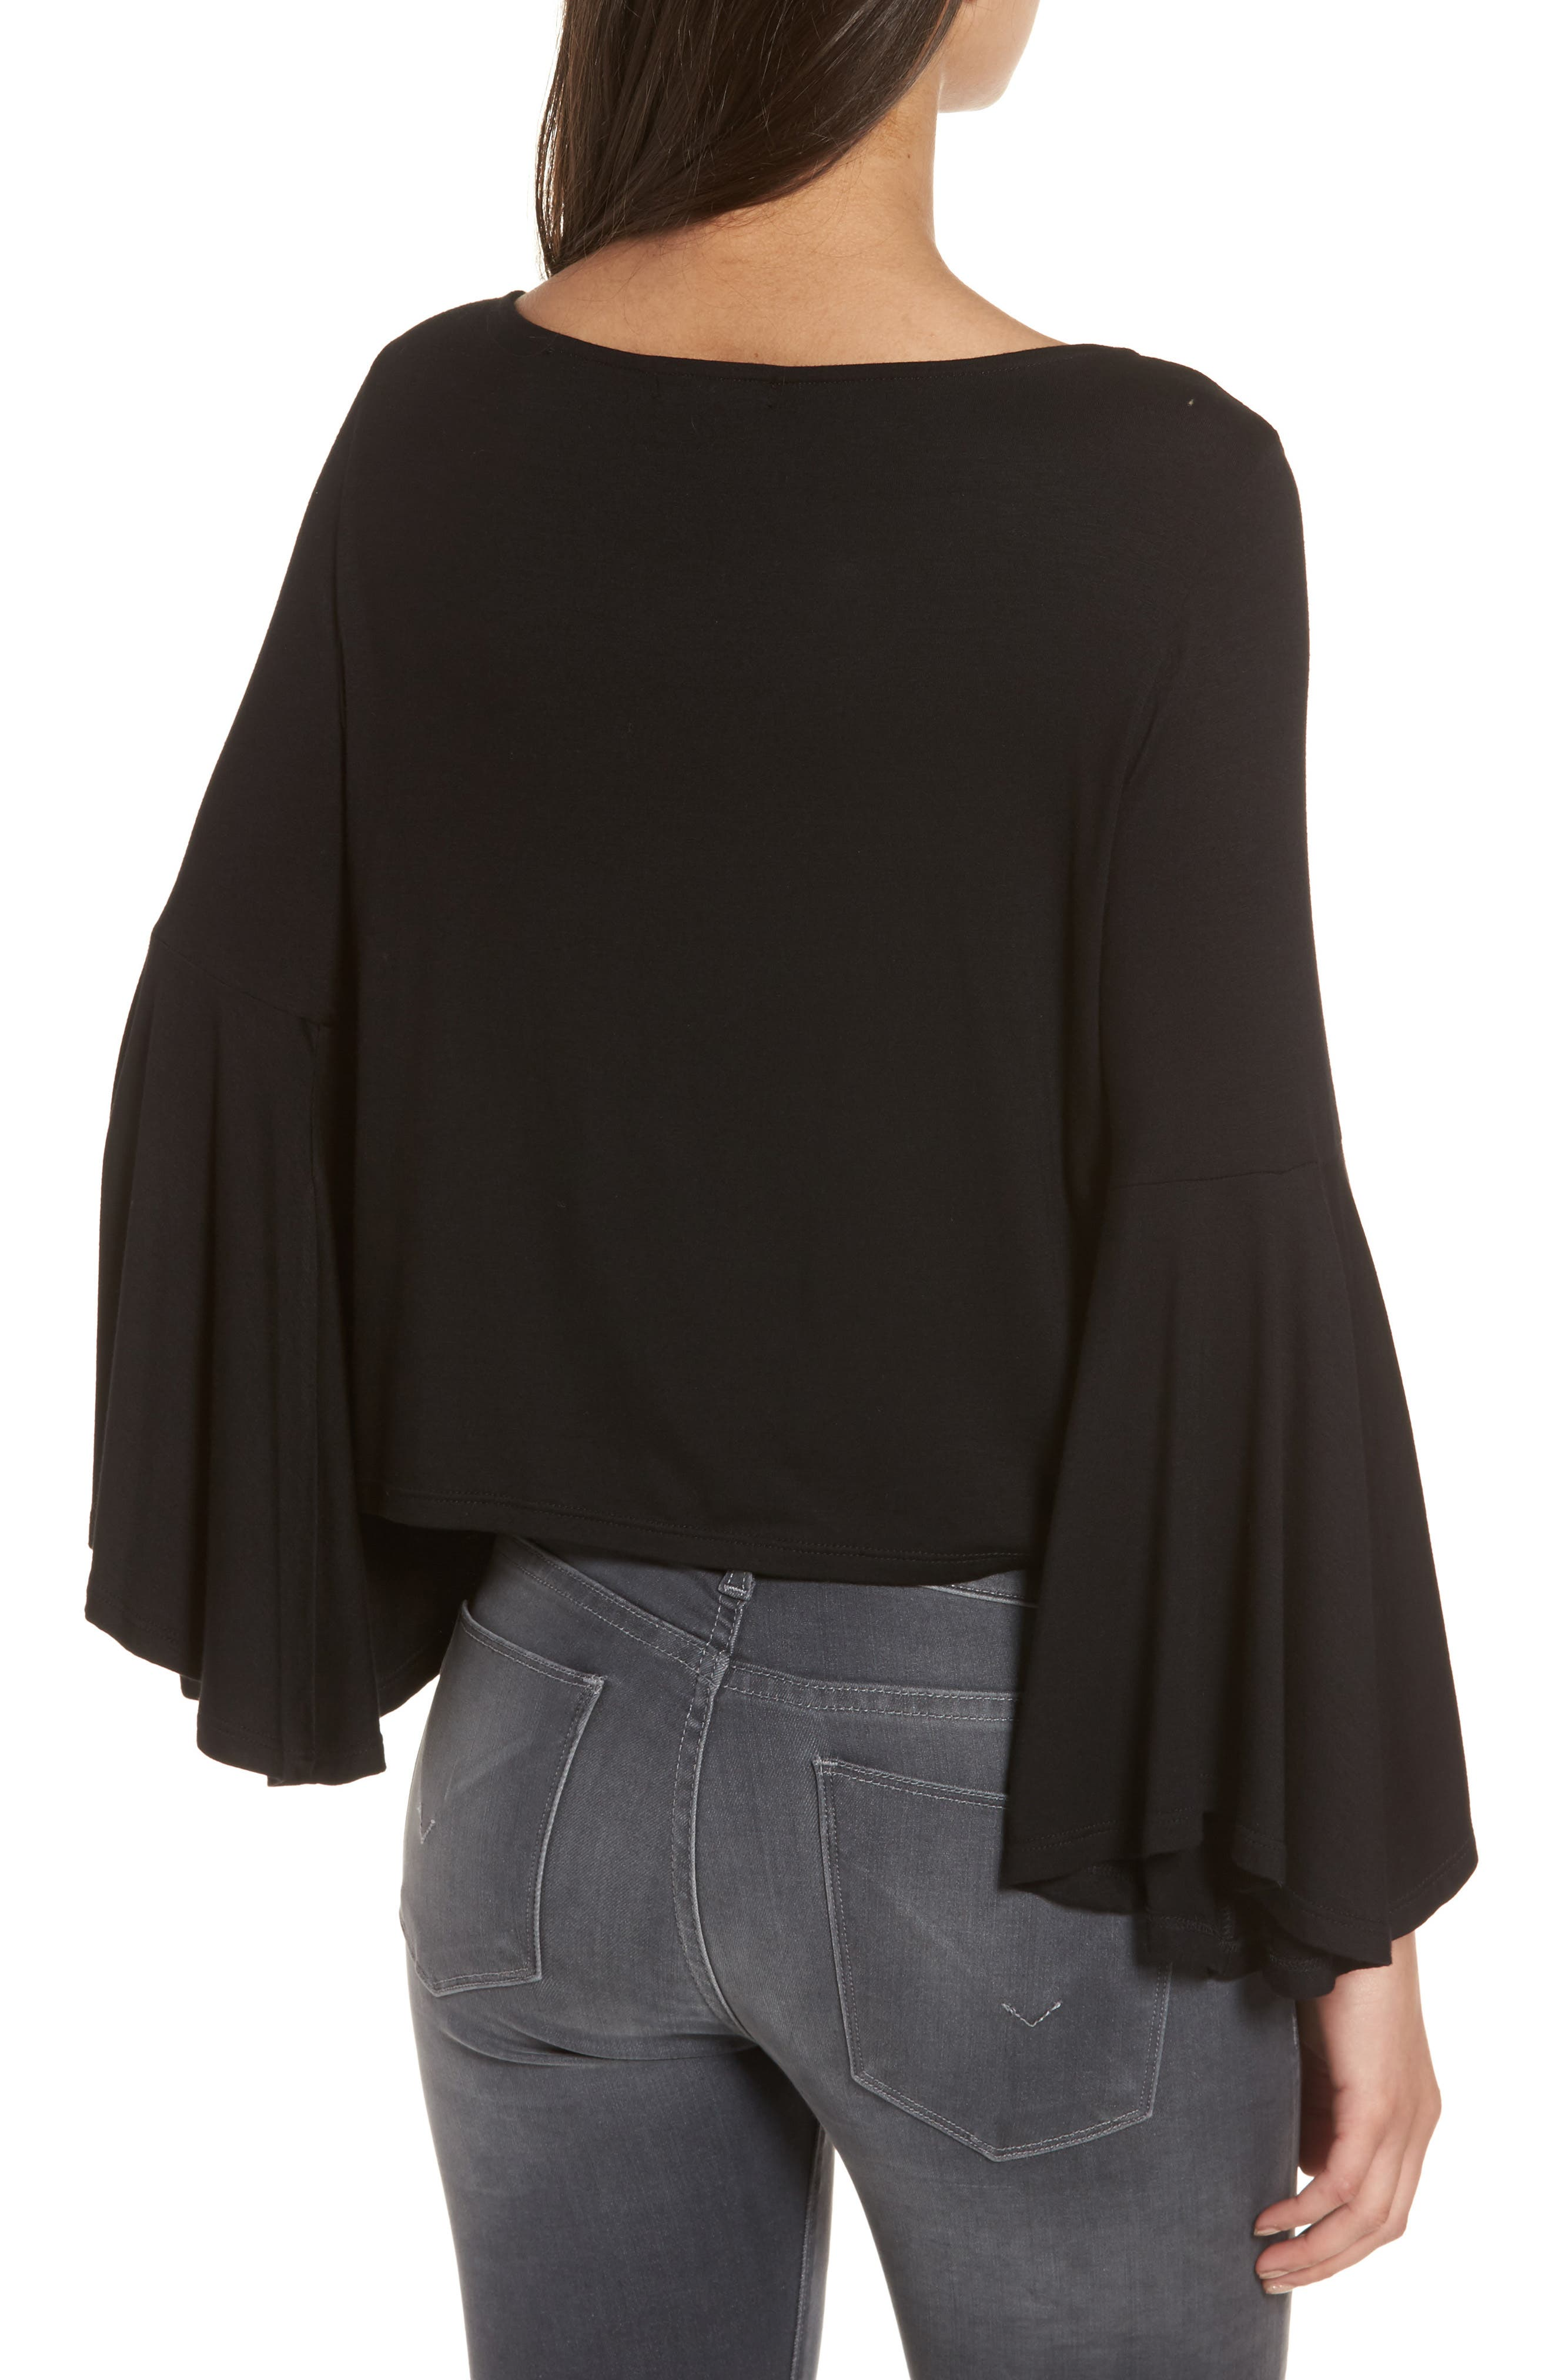 Bella Bell Sleeve Top,                             Alternate thumbnail 2, color,                             001